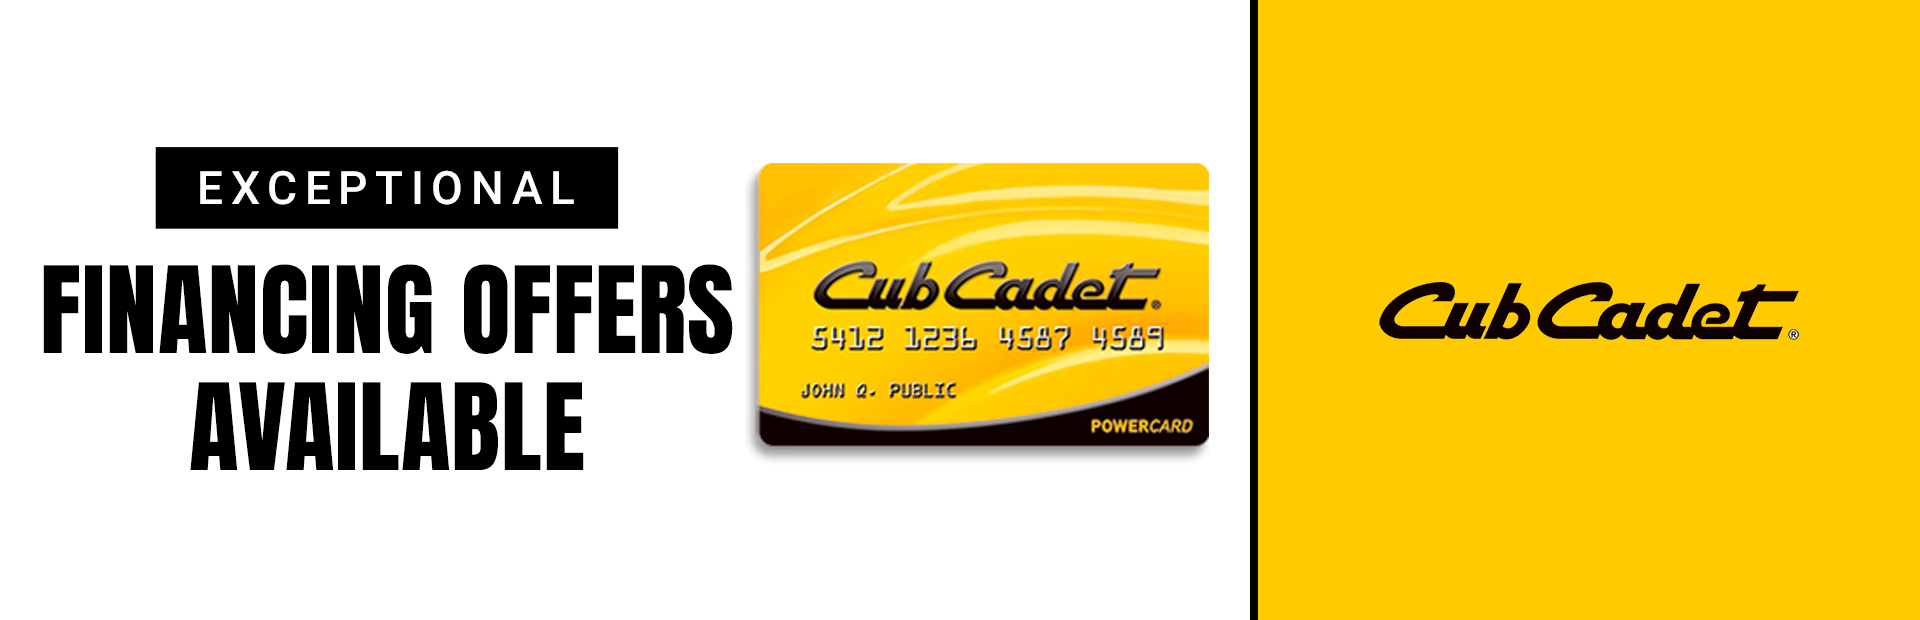 Cub Cadet: EXCEPTIONAL FINANCING OFFERS AVAILABLE.